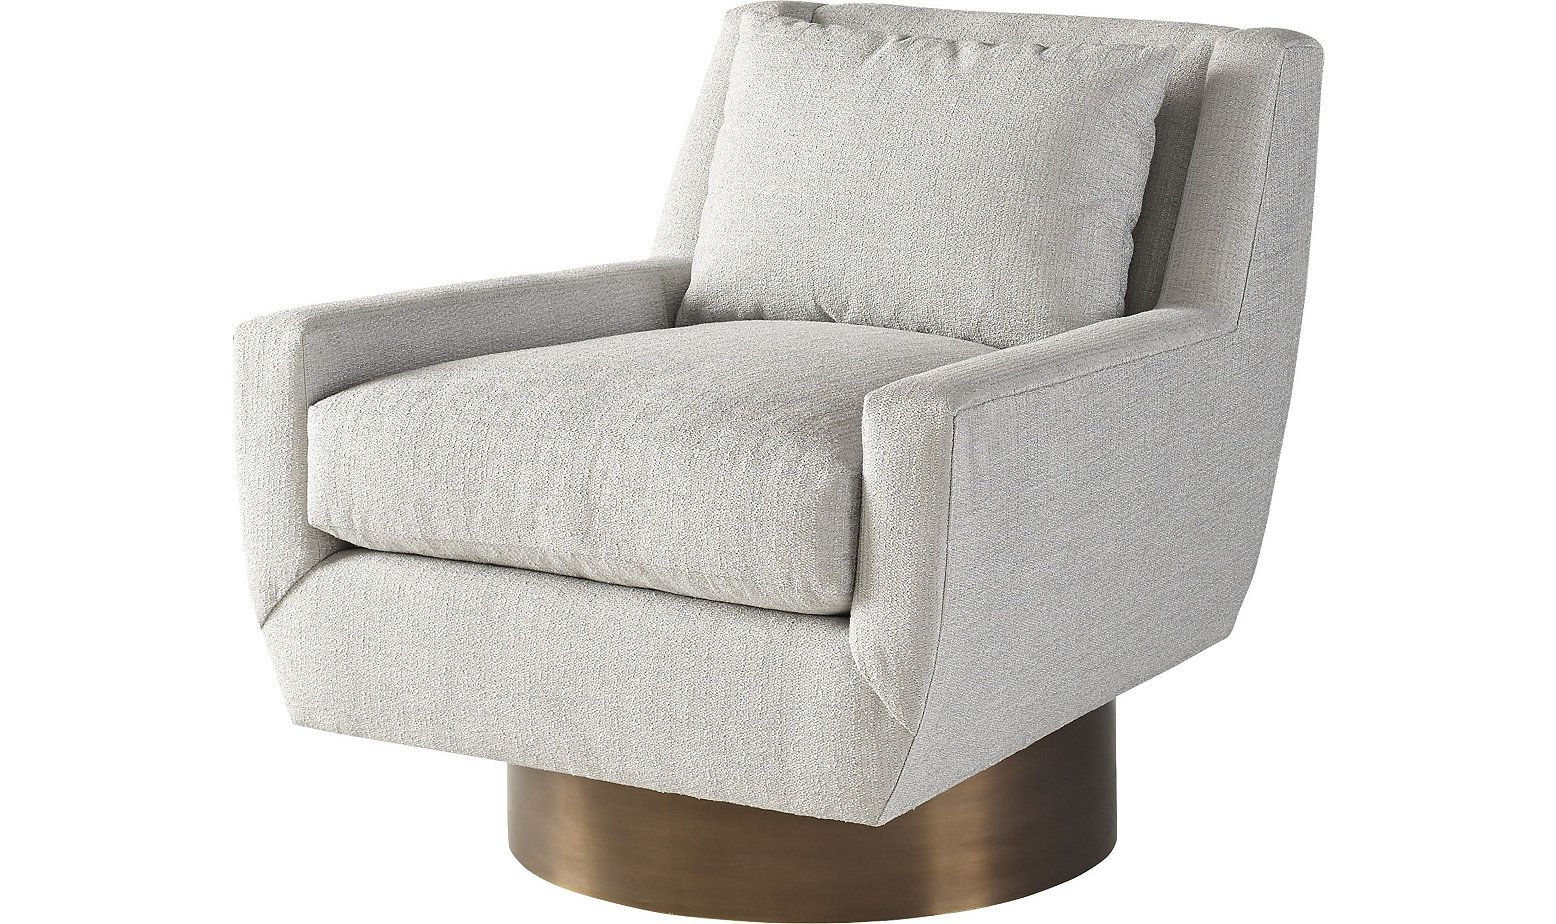 Verve Lounge Chair By Barbara Barry 6741c Baker Furniture